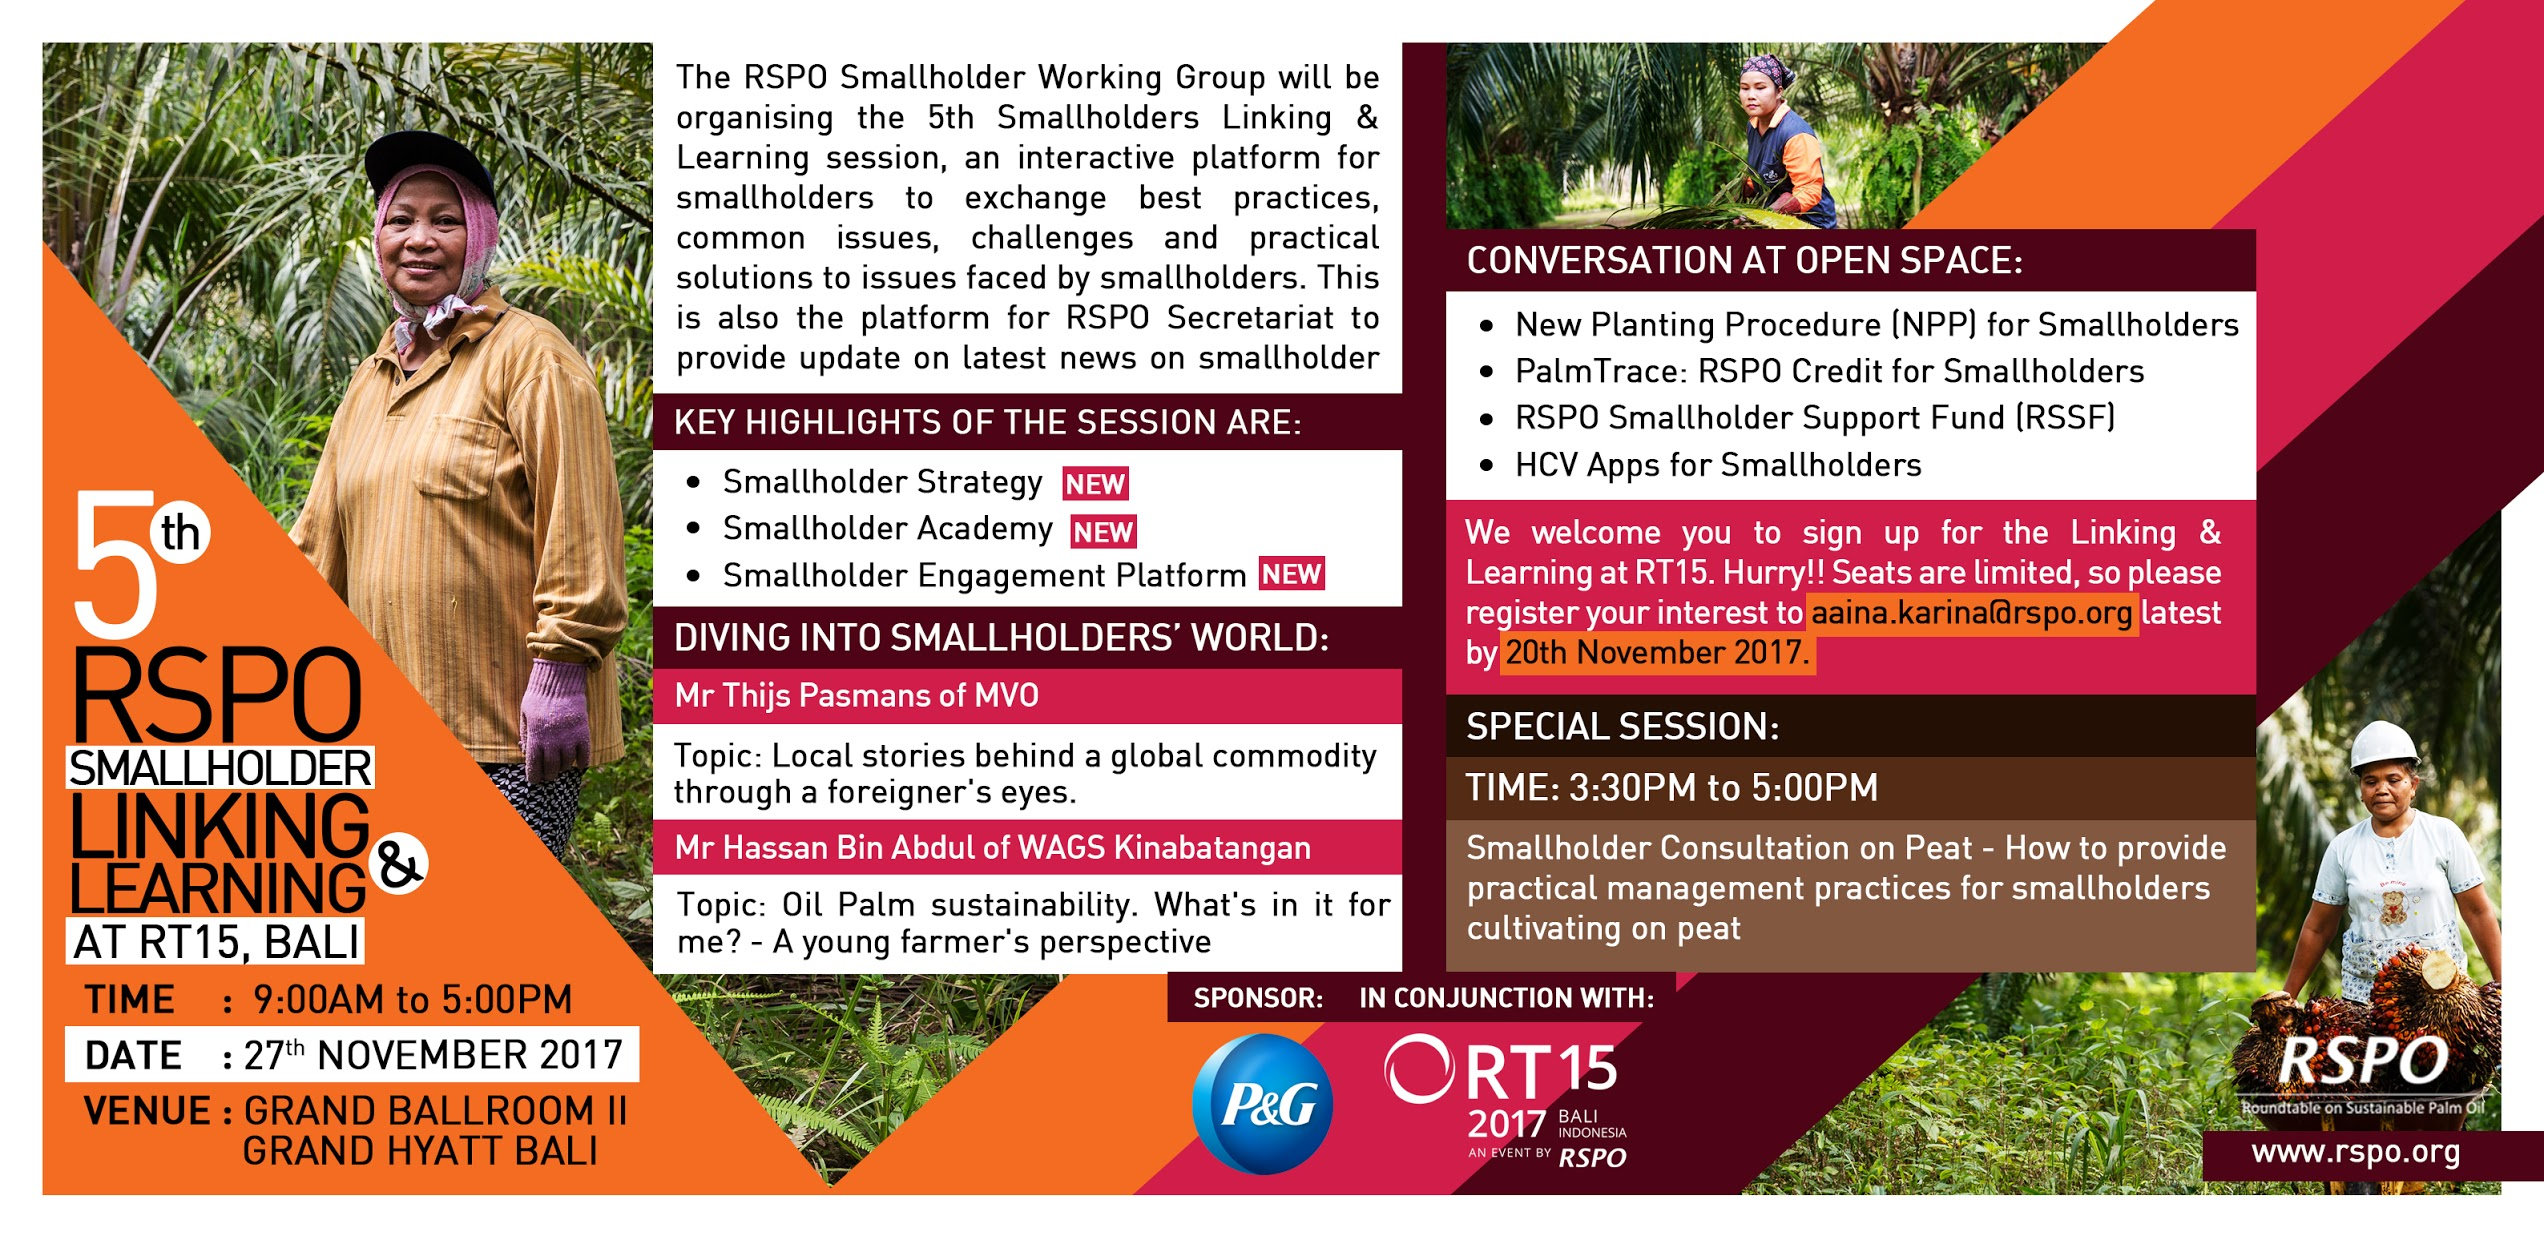 5th RSPO Smallholder Linking & Learning at RT15, Bali